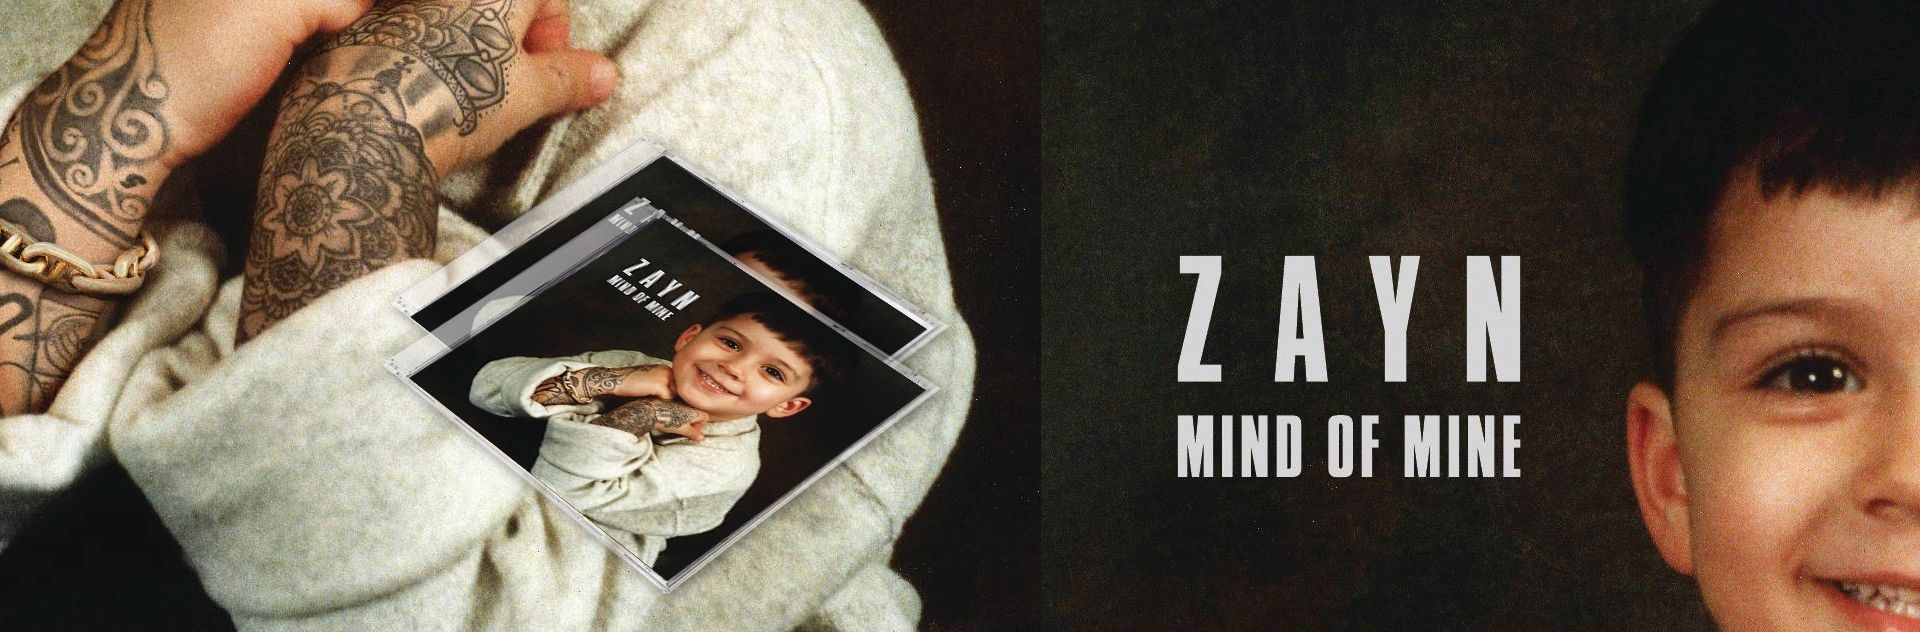 "Zayn Malik ""Mind of Mine"""